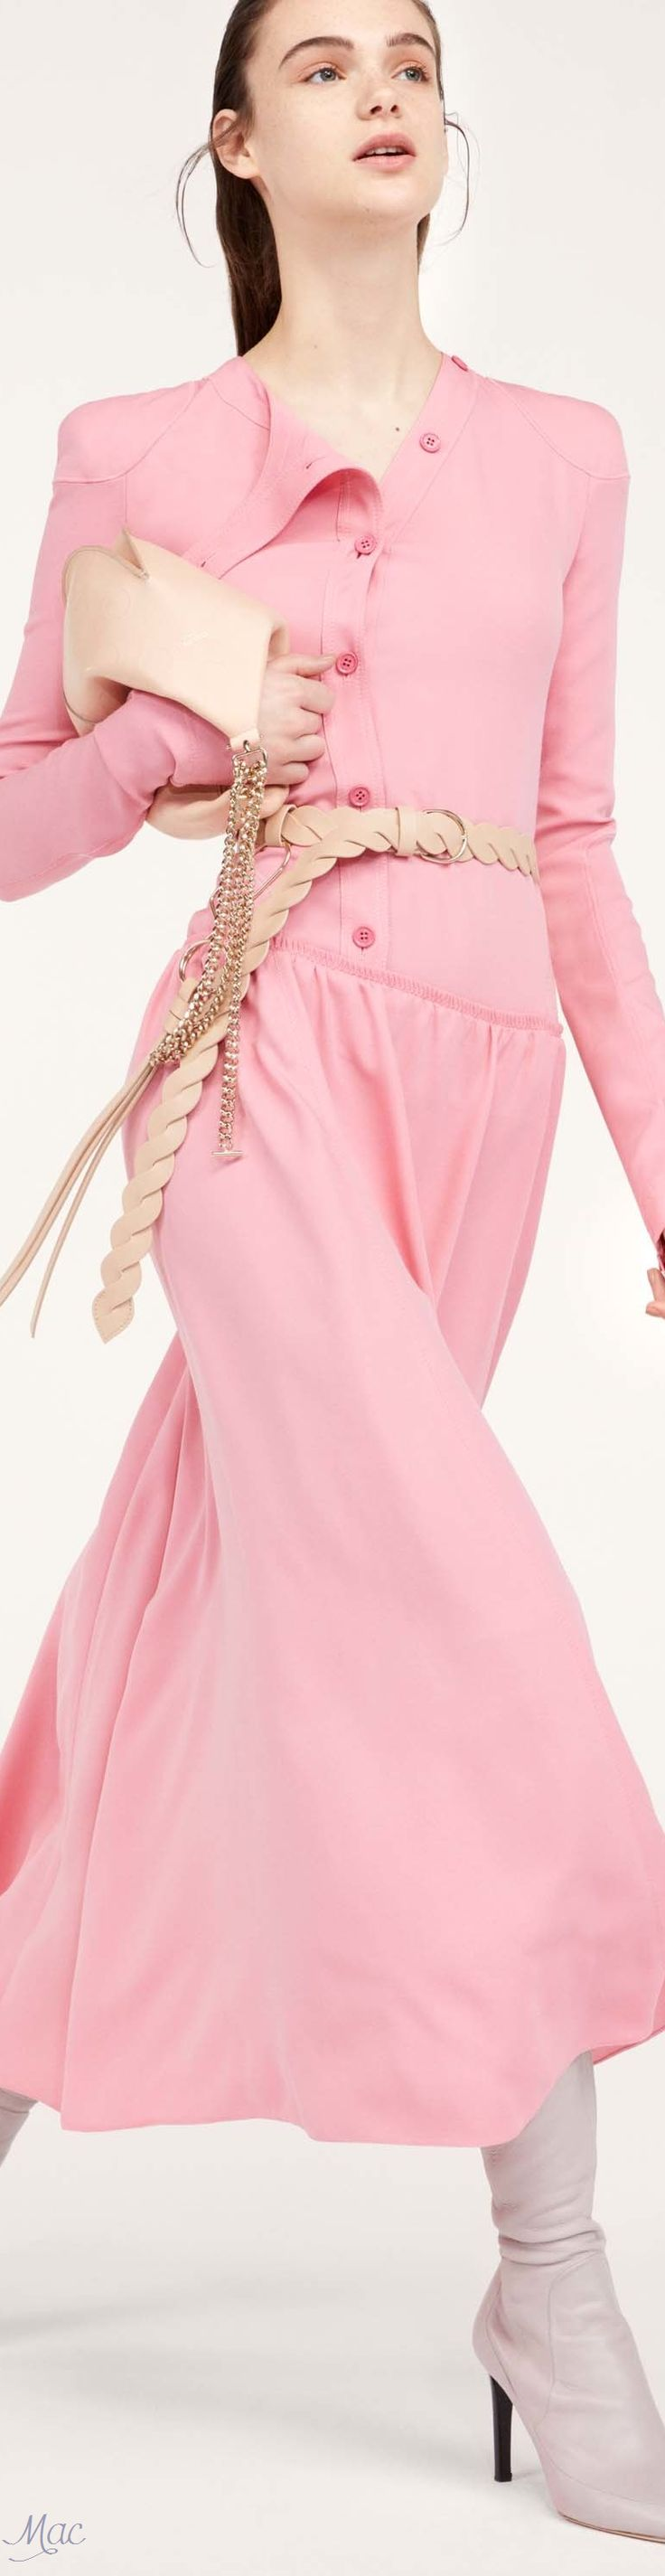 Bubblegum buttondown maxi dress, blush braided leather belt, blush fortune cookie purse, concrete stiletto boots